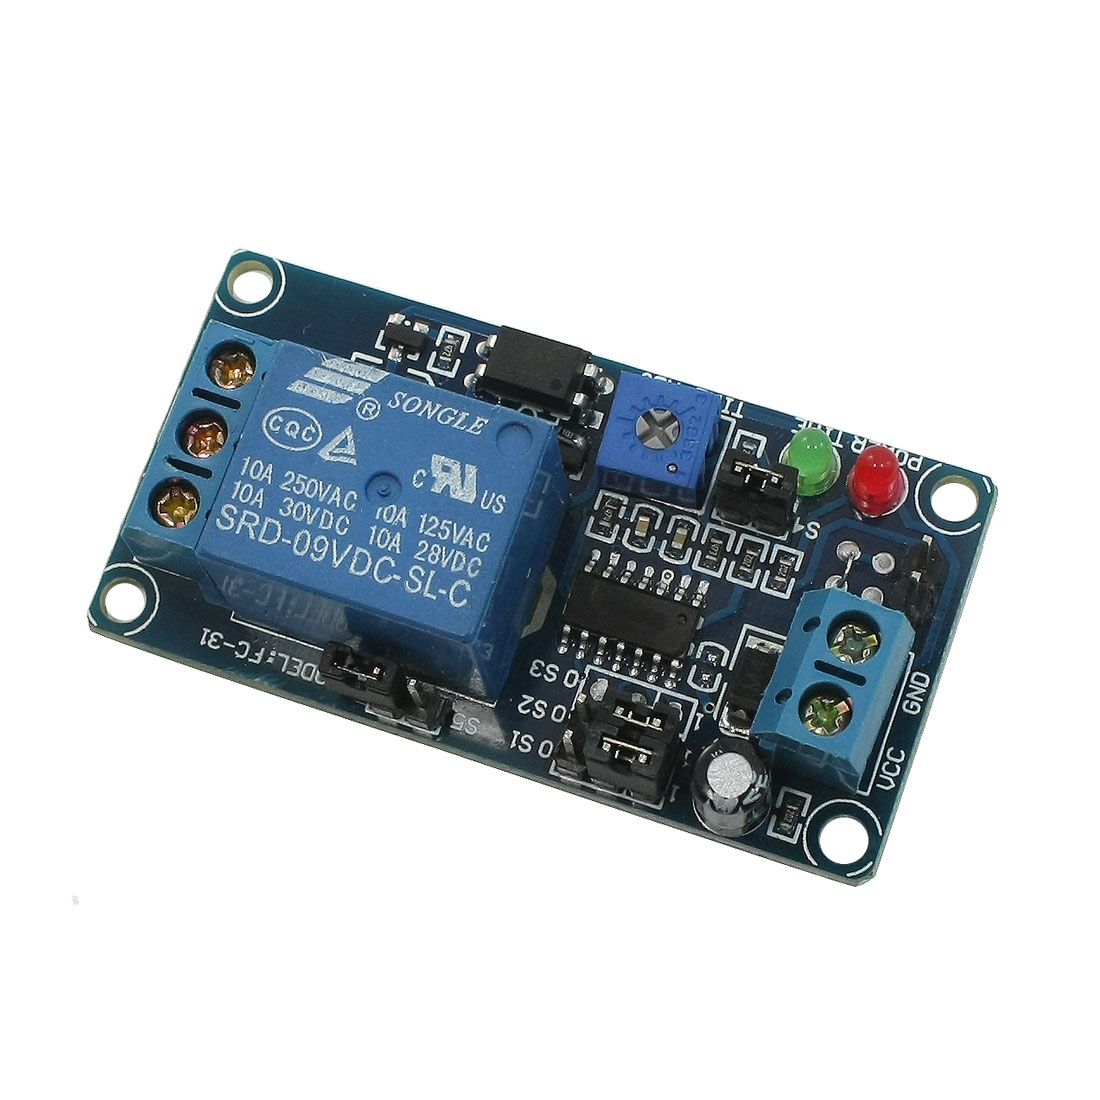 DC 9V SRD-9VDC-SL-C Circulate Time Delay Relay Module Board